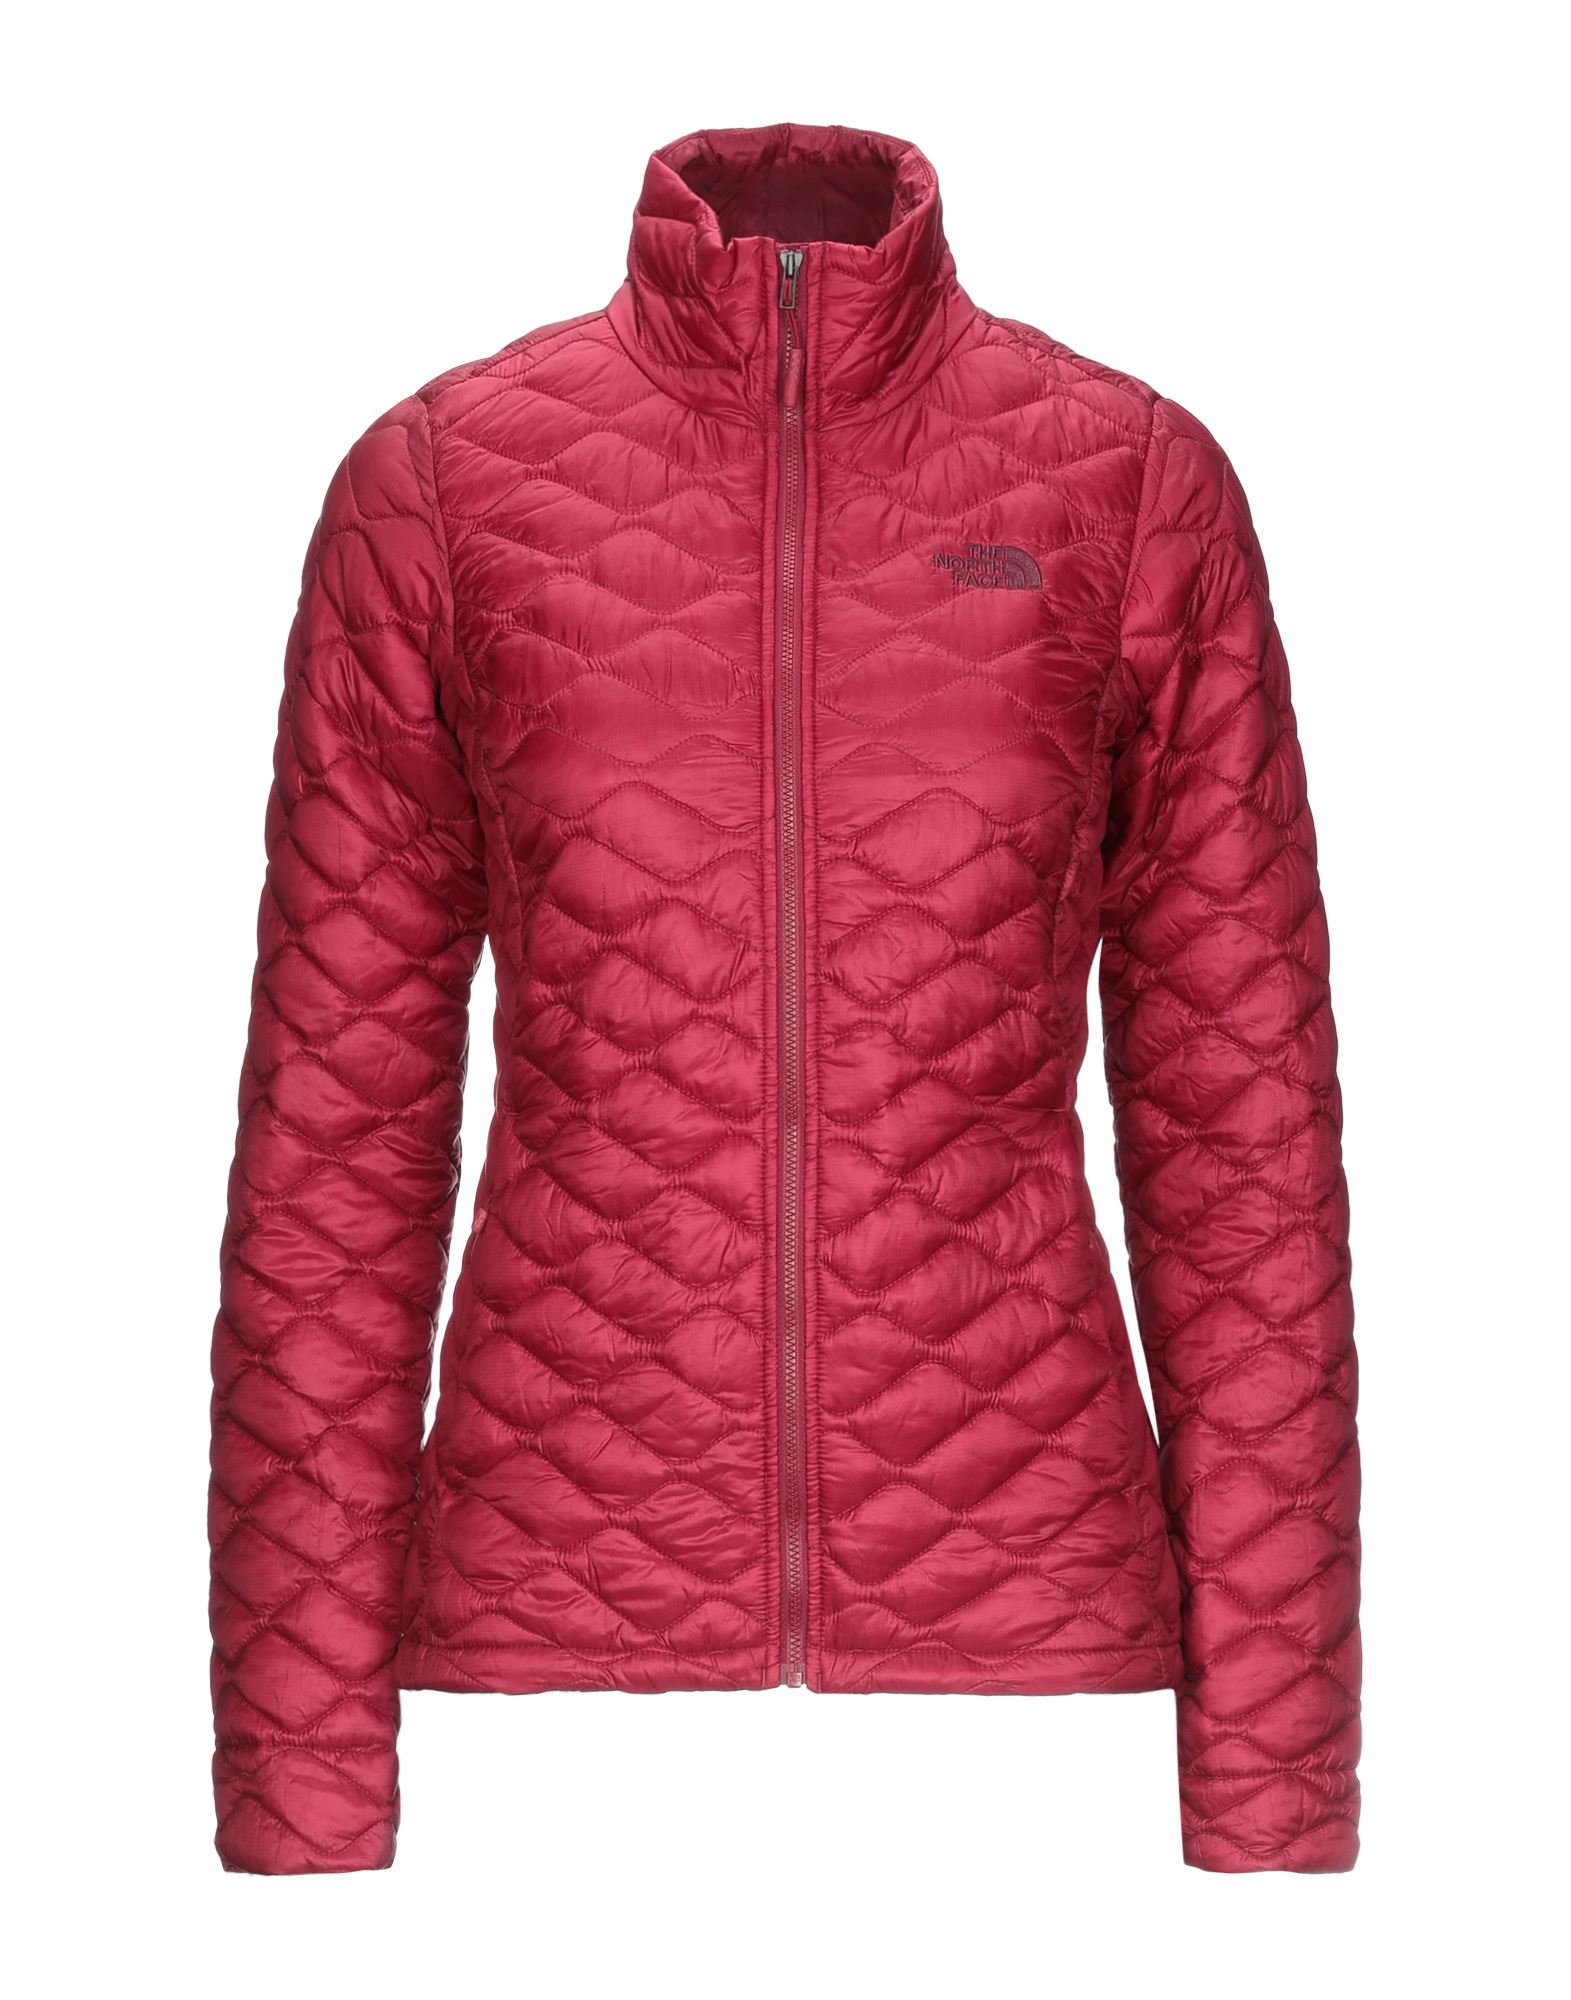 THE NORTH FACE Synthetic Down Jackets - Item 16000697